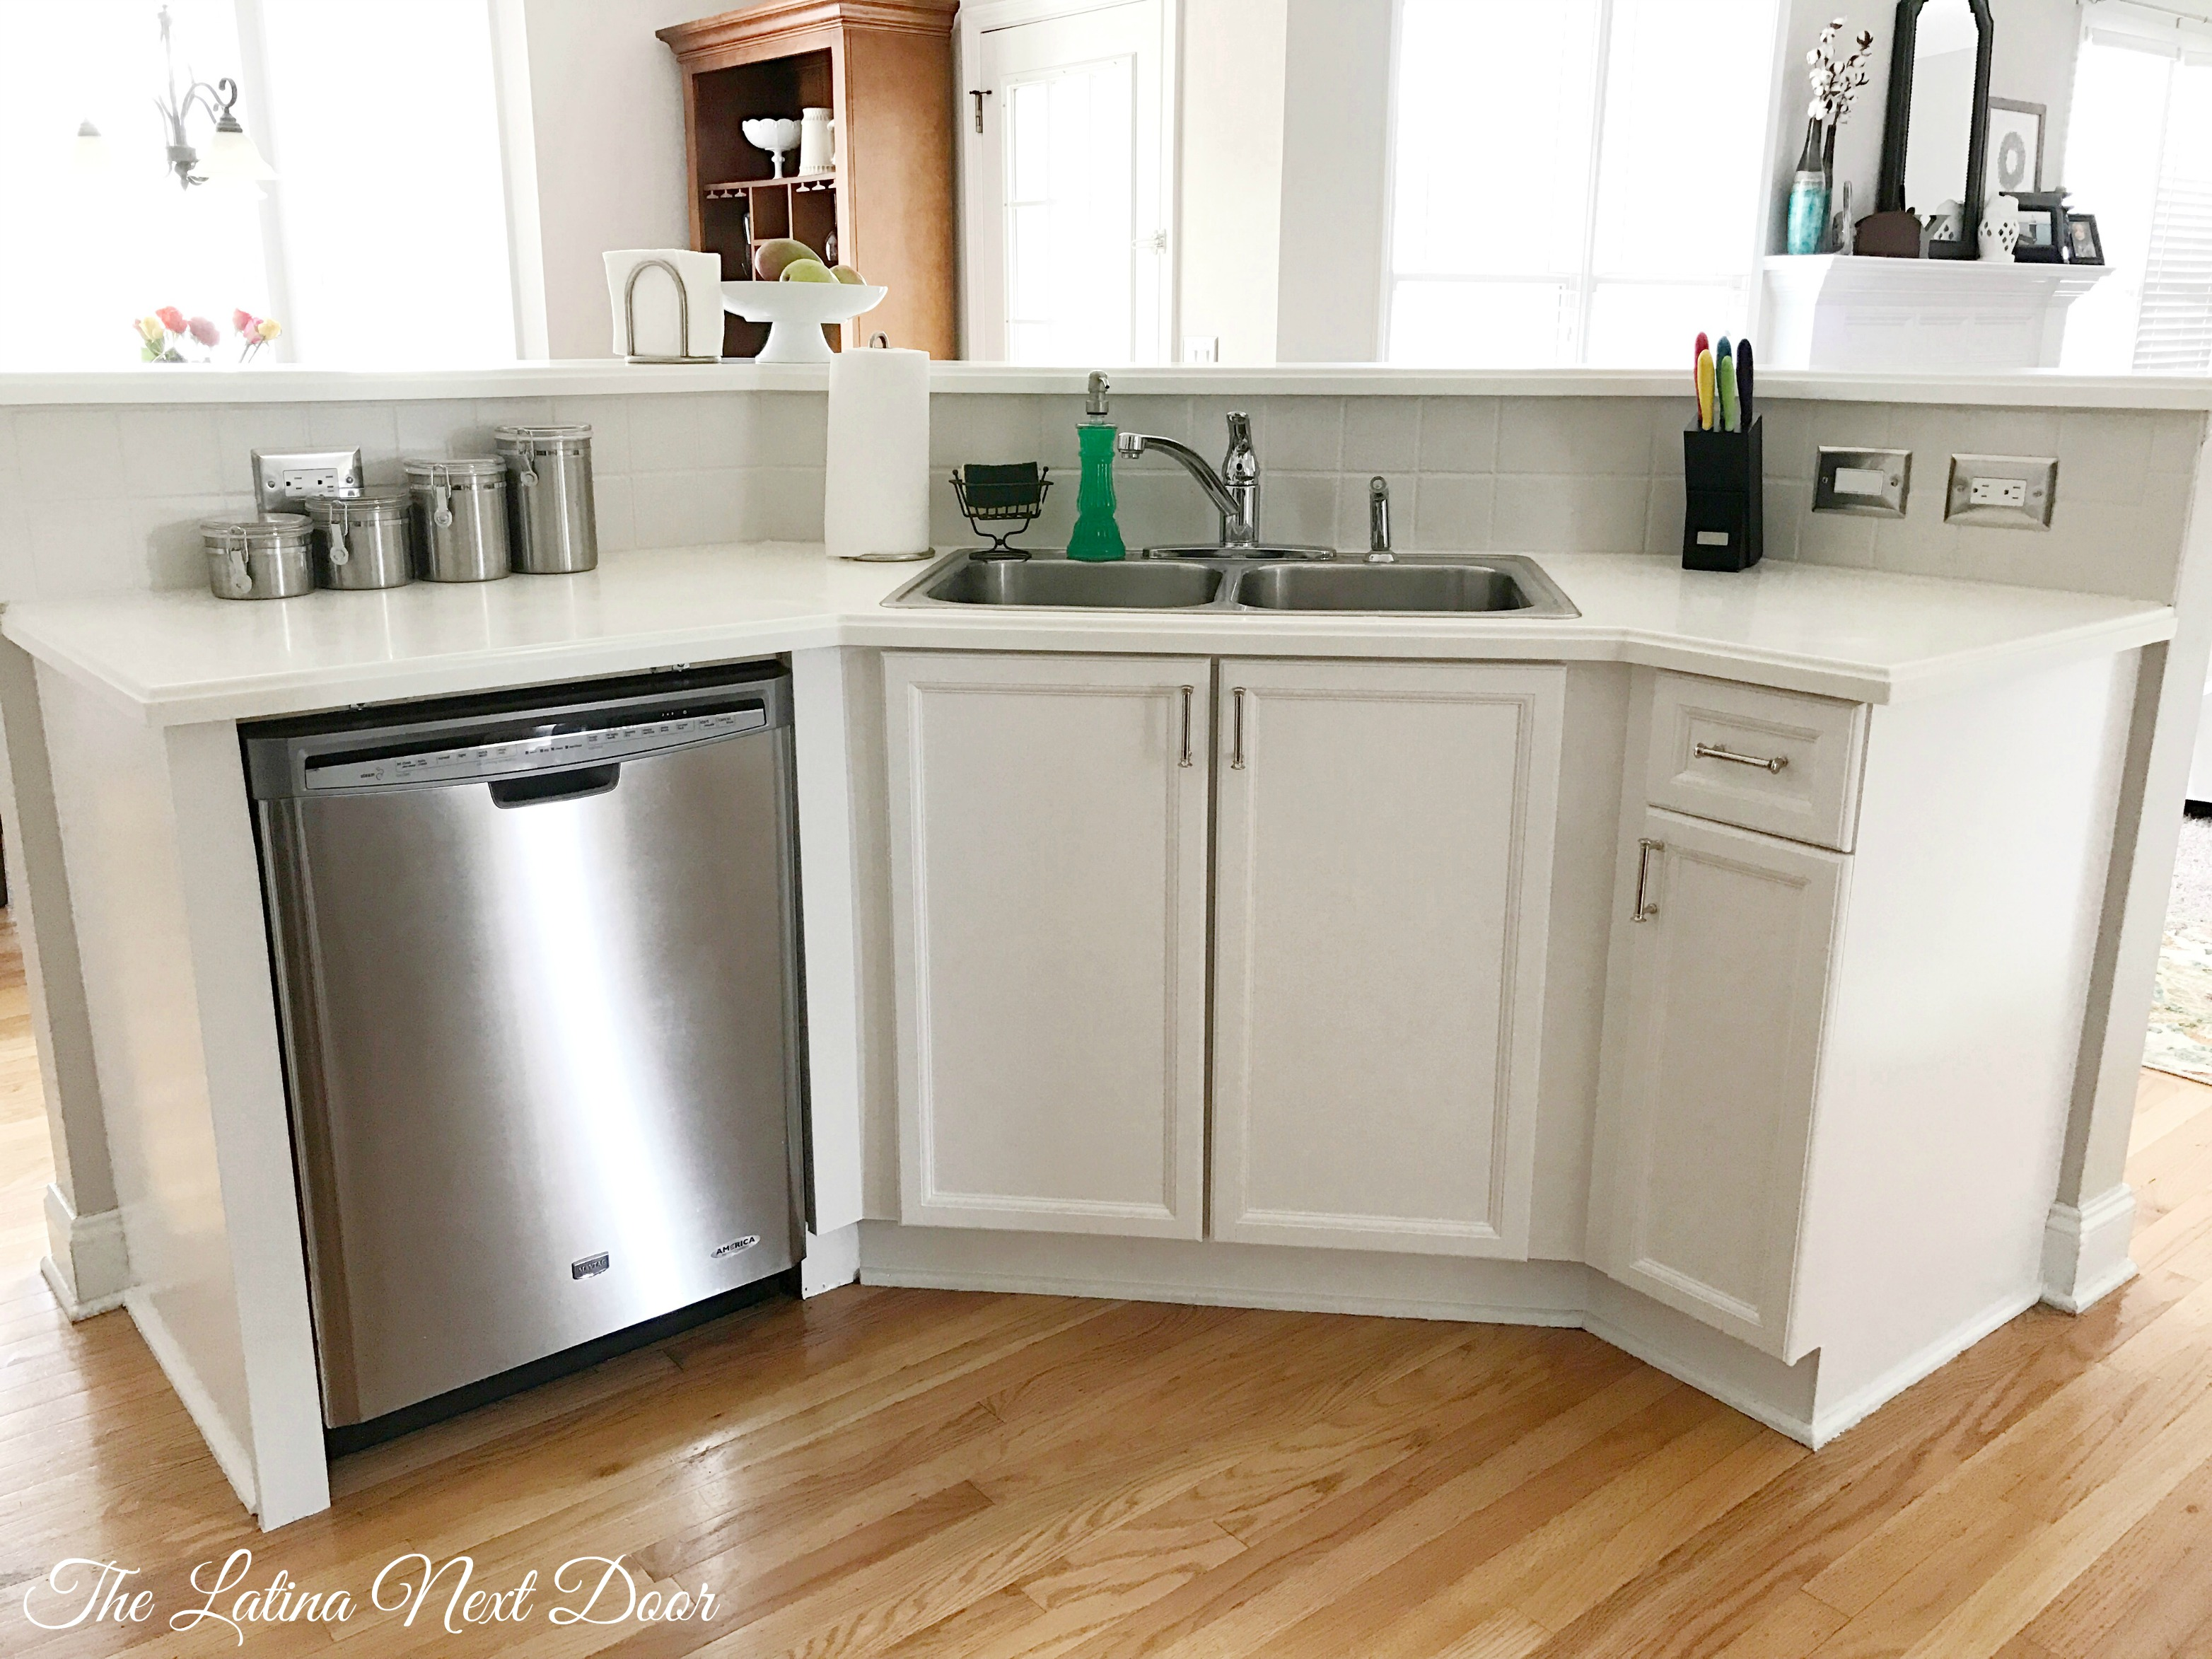 SW Painted Kitchen AFTER 5 How To Paint Kitchen Cabinets